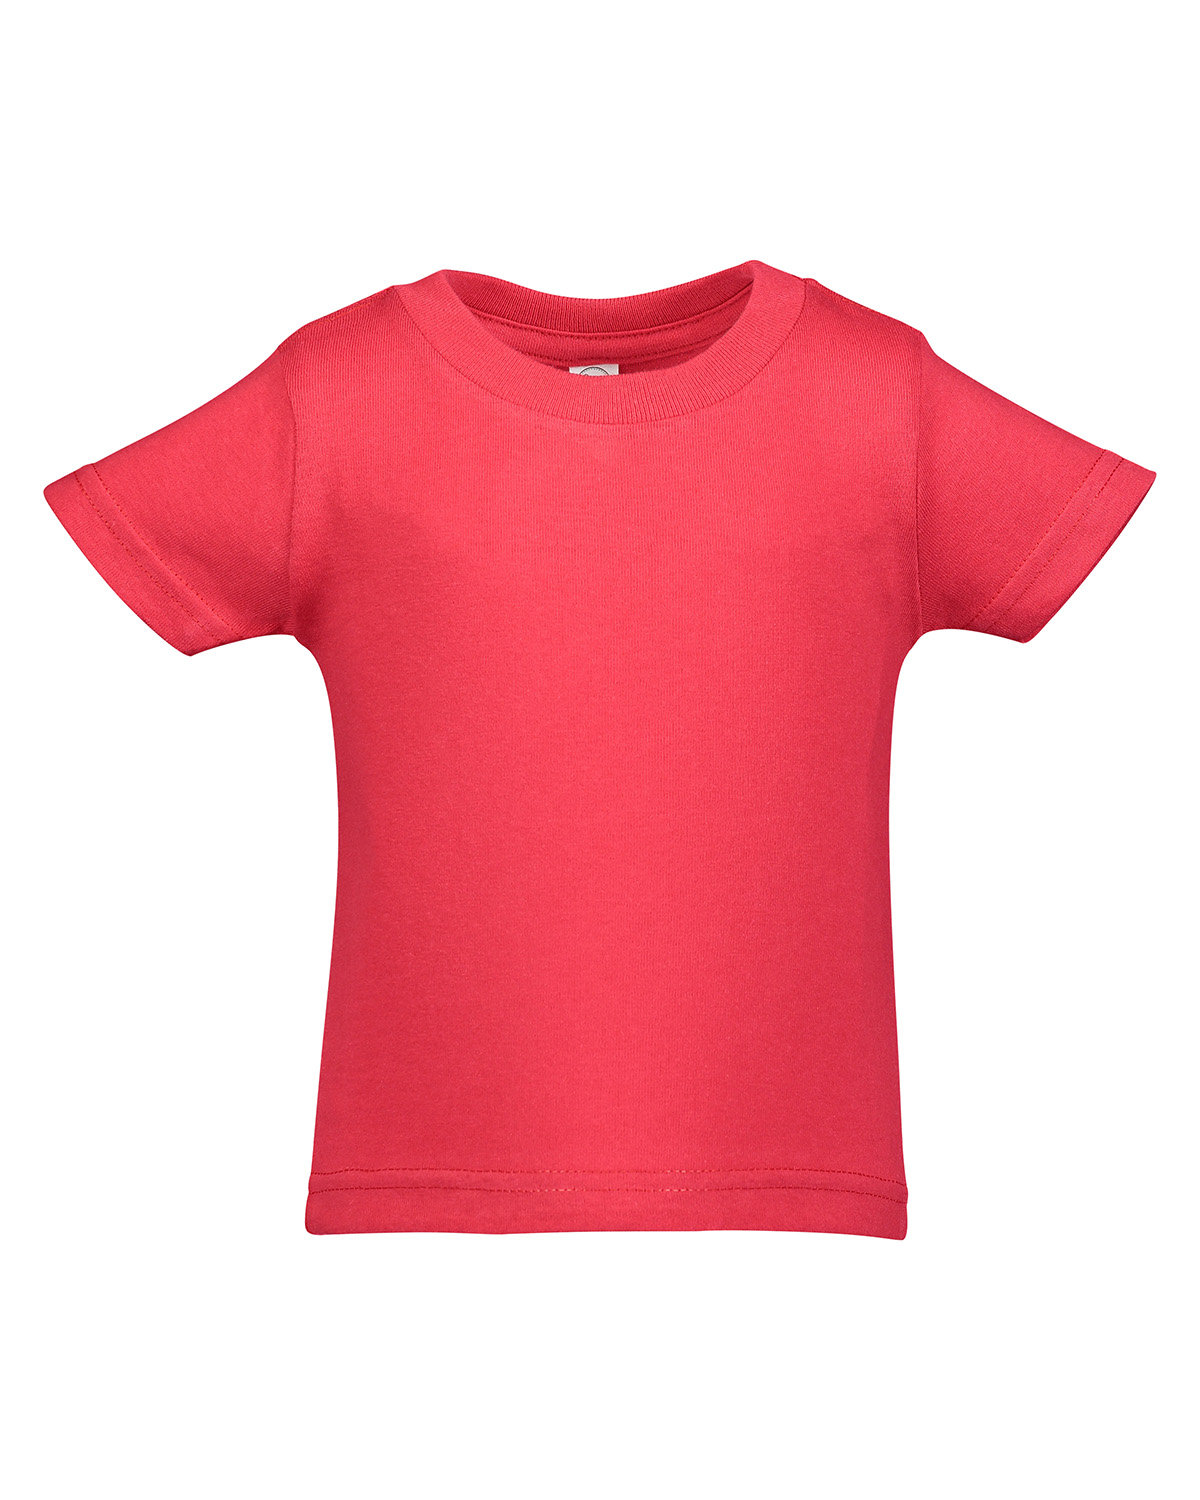 Rabbit Skins Infant Cotton Jersey T-Shirt RED